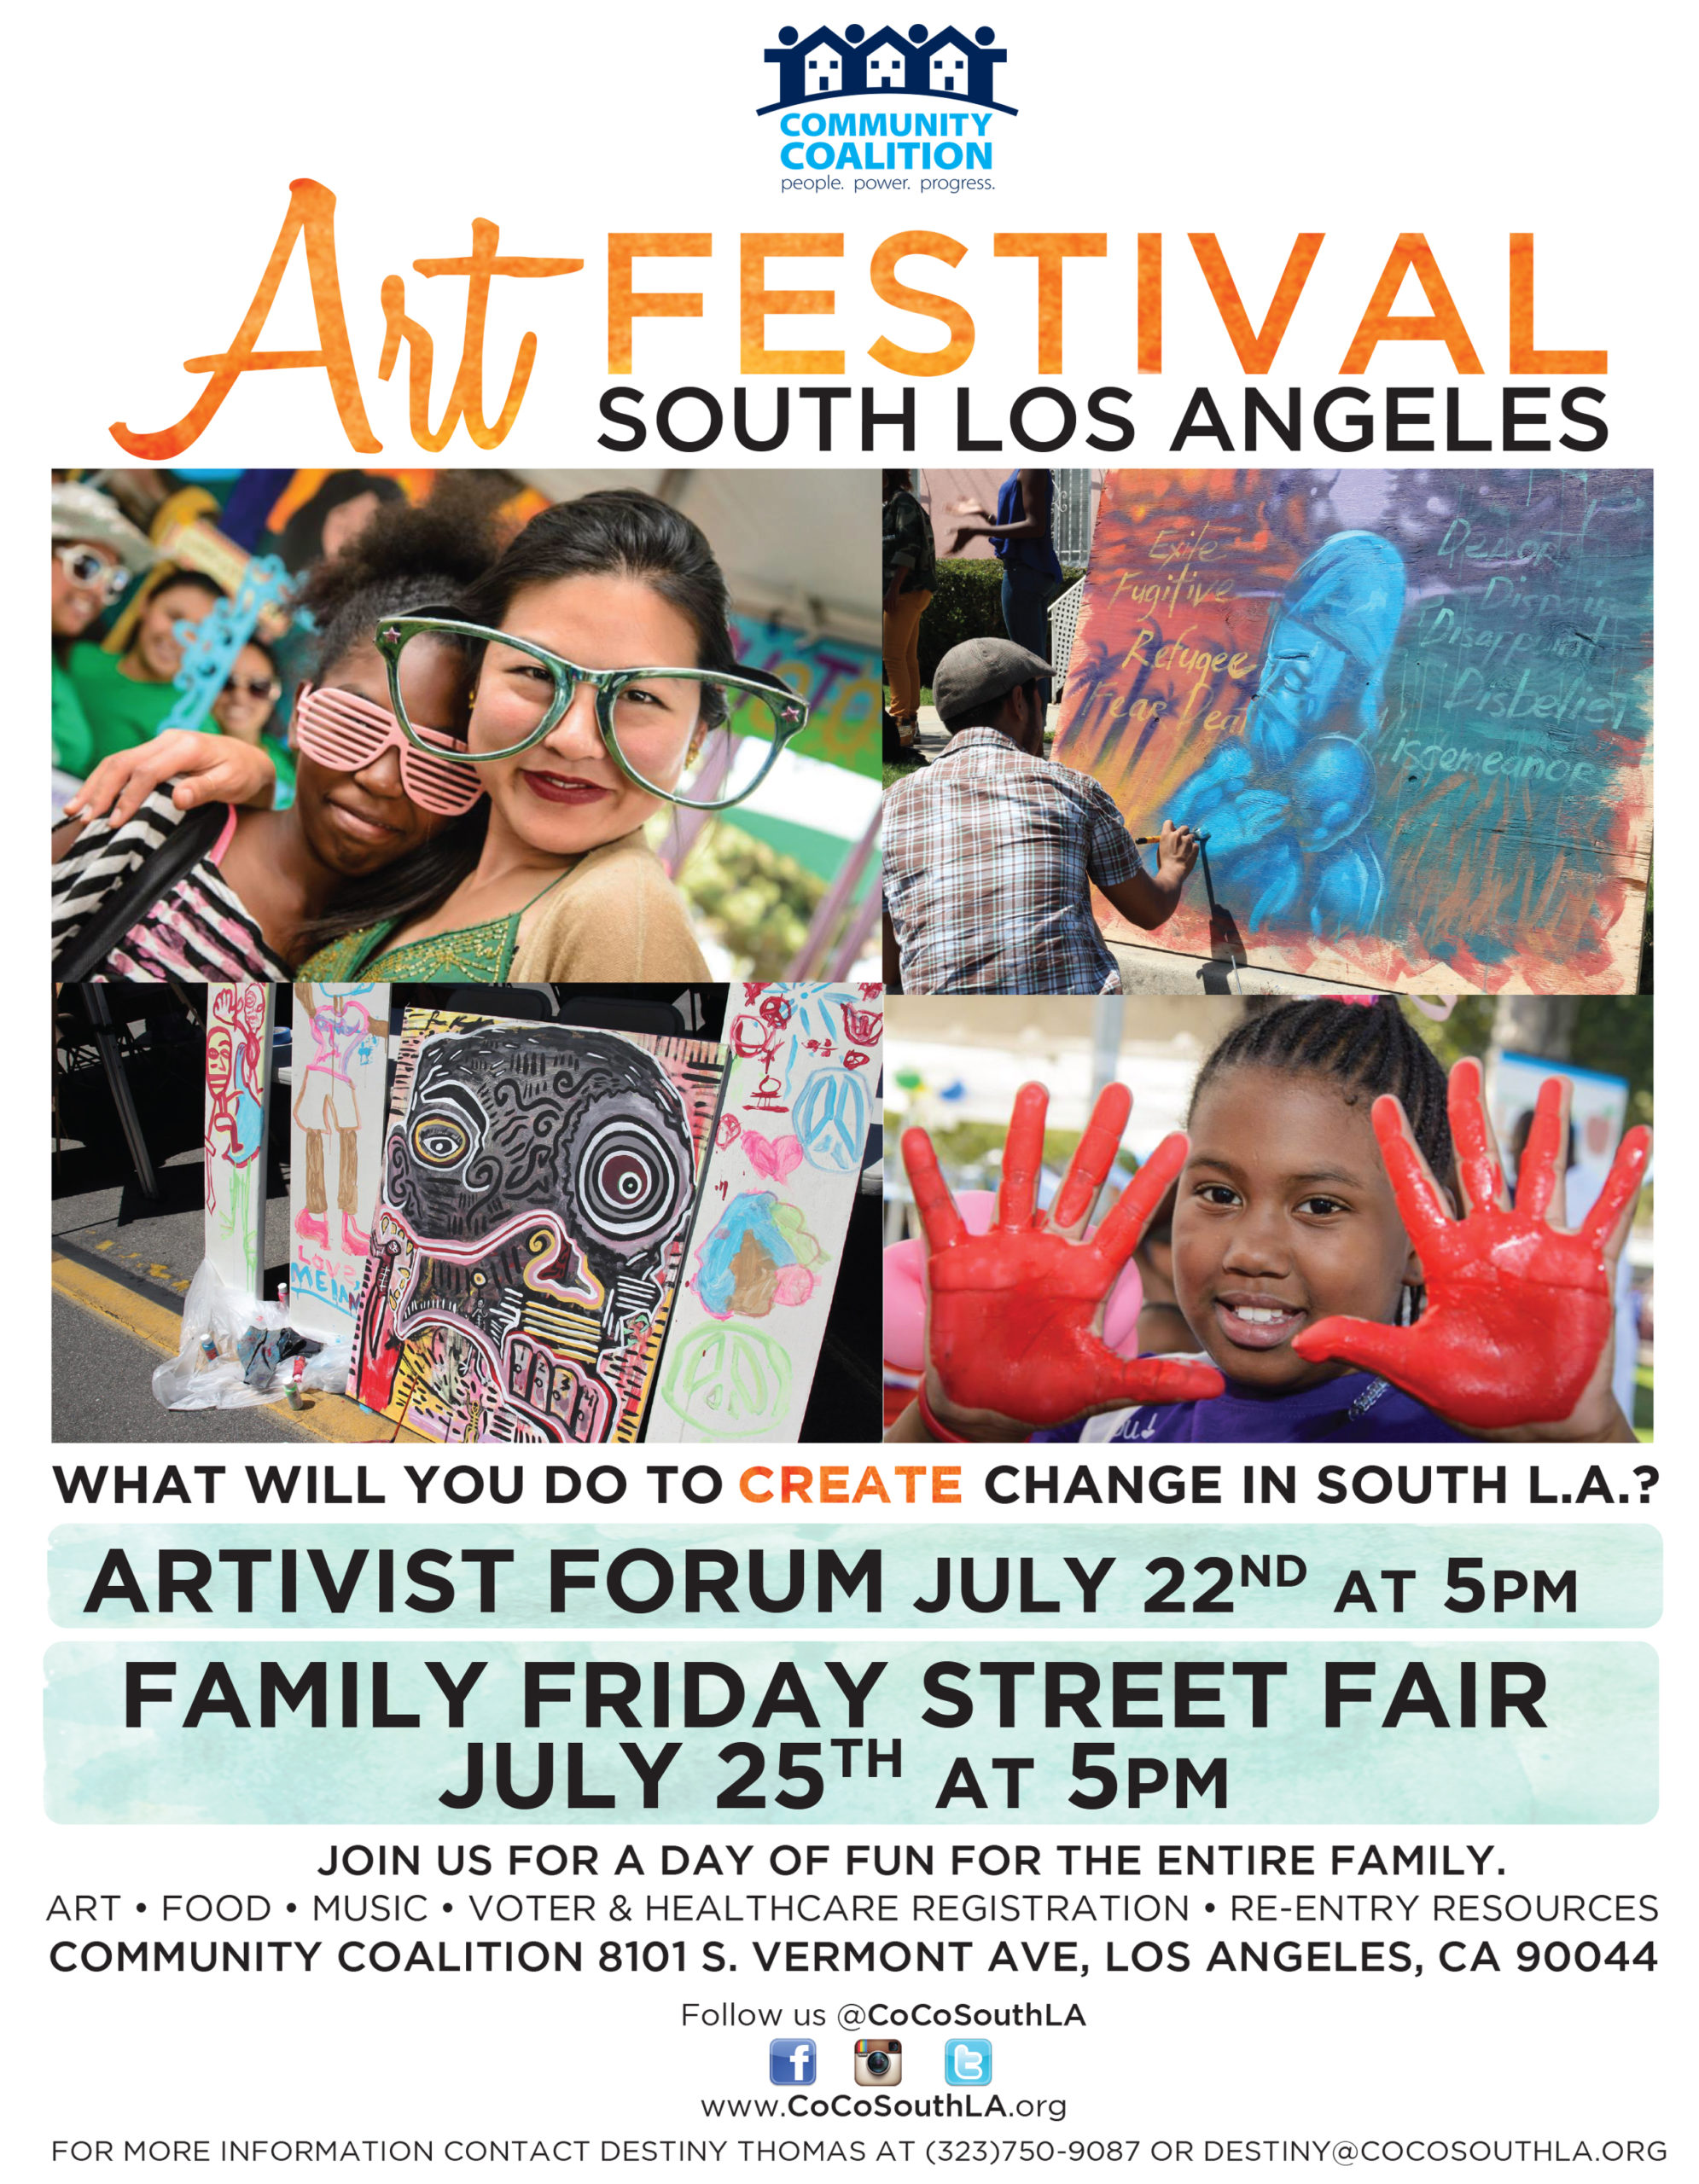 Community Coalition Art Festival